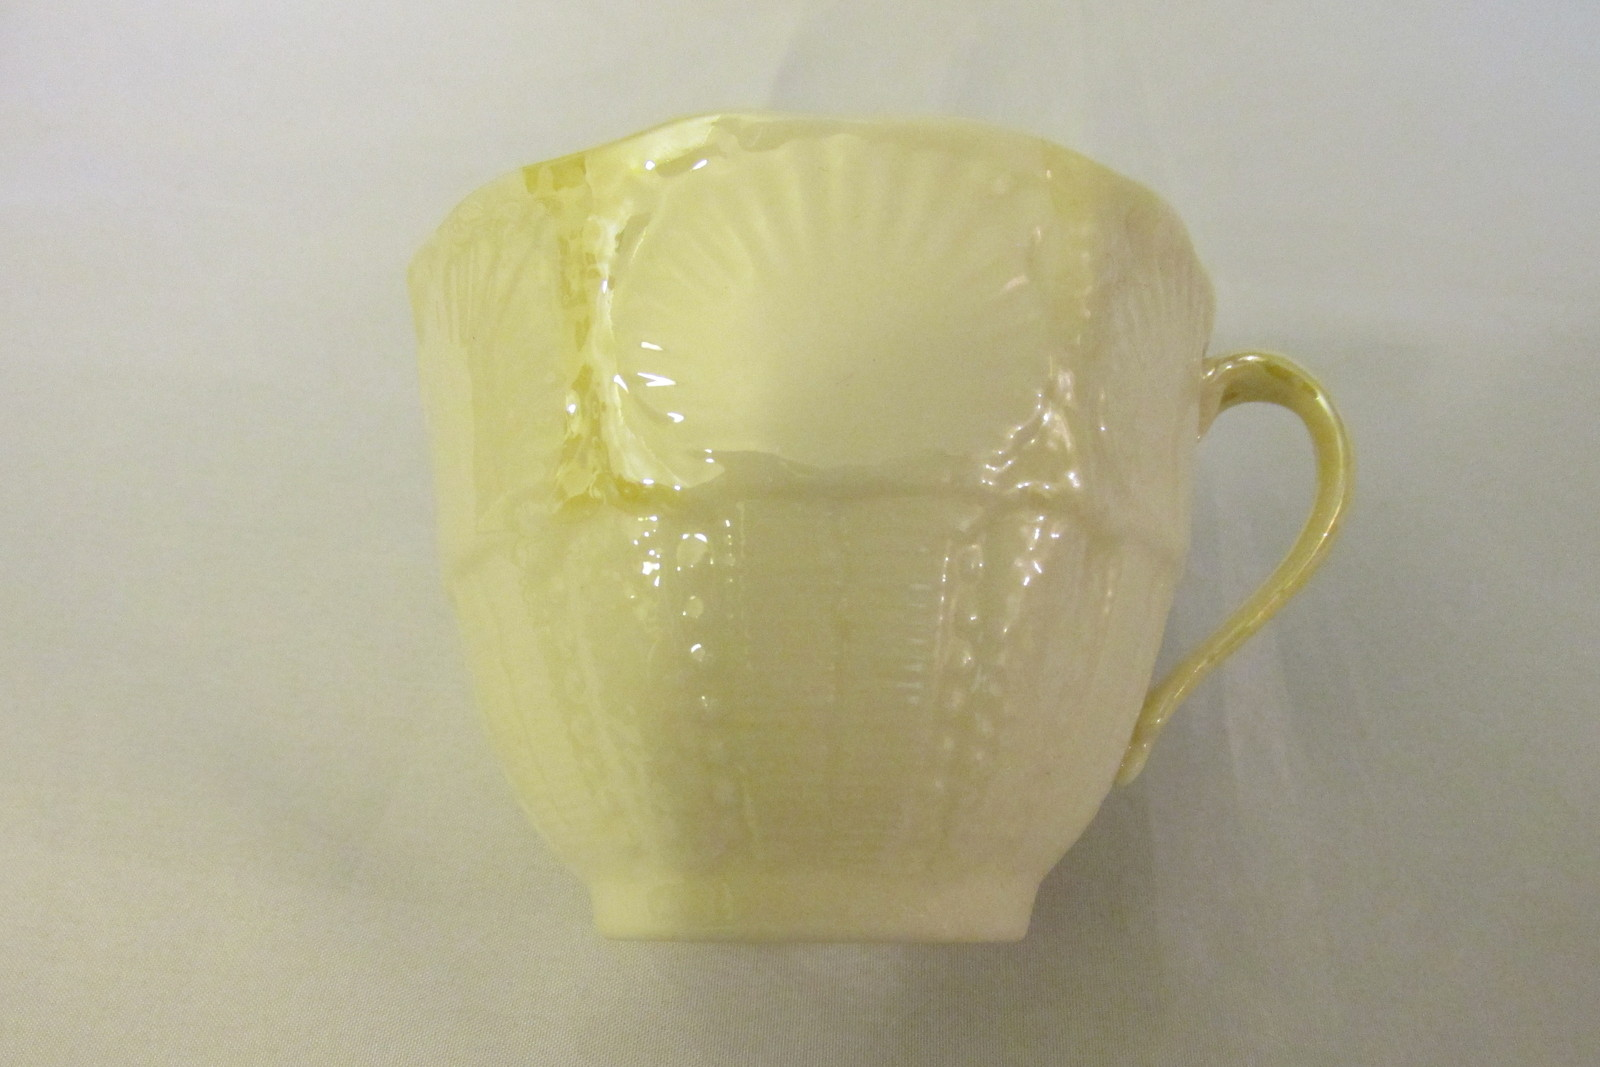 Vintage Belleek Irish Pottery Cup & Saucer, New Shell Pattern, Discontinued 1991